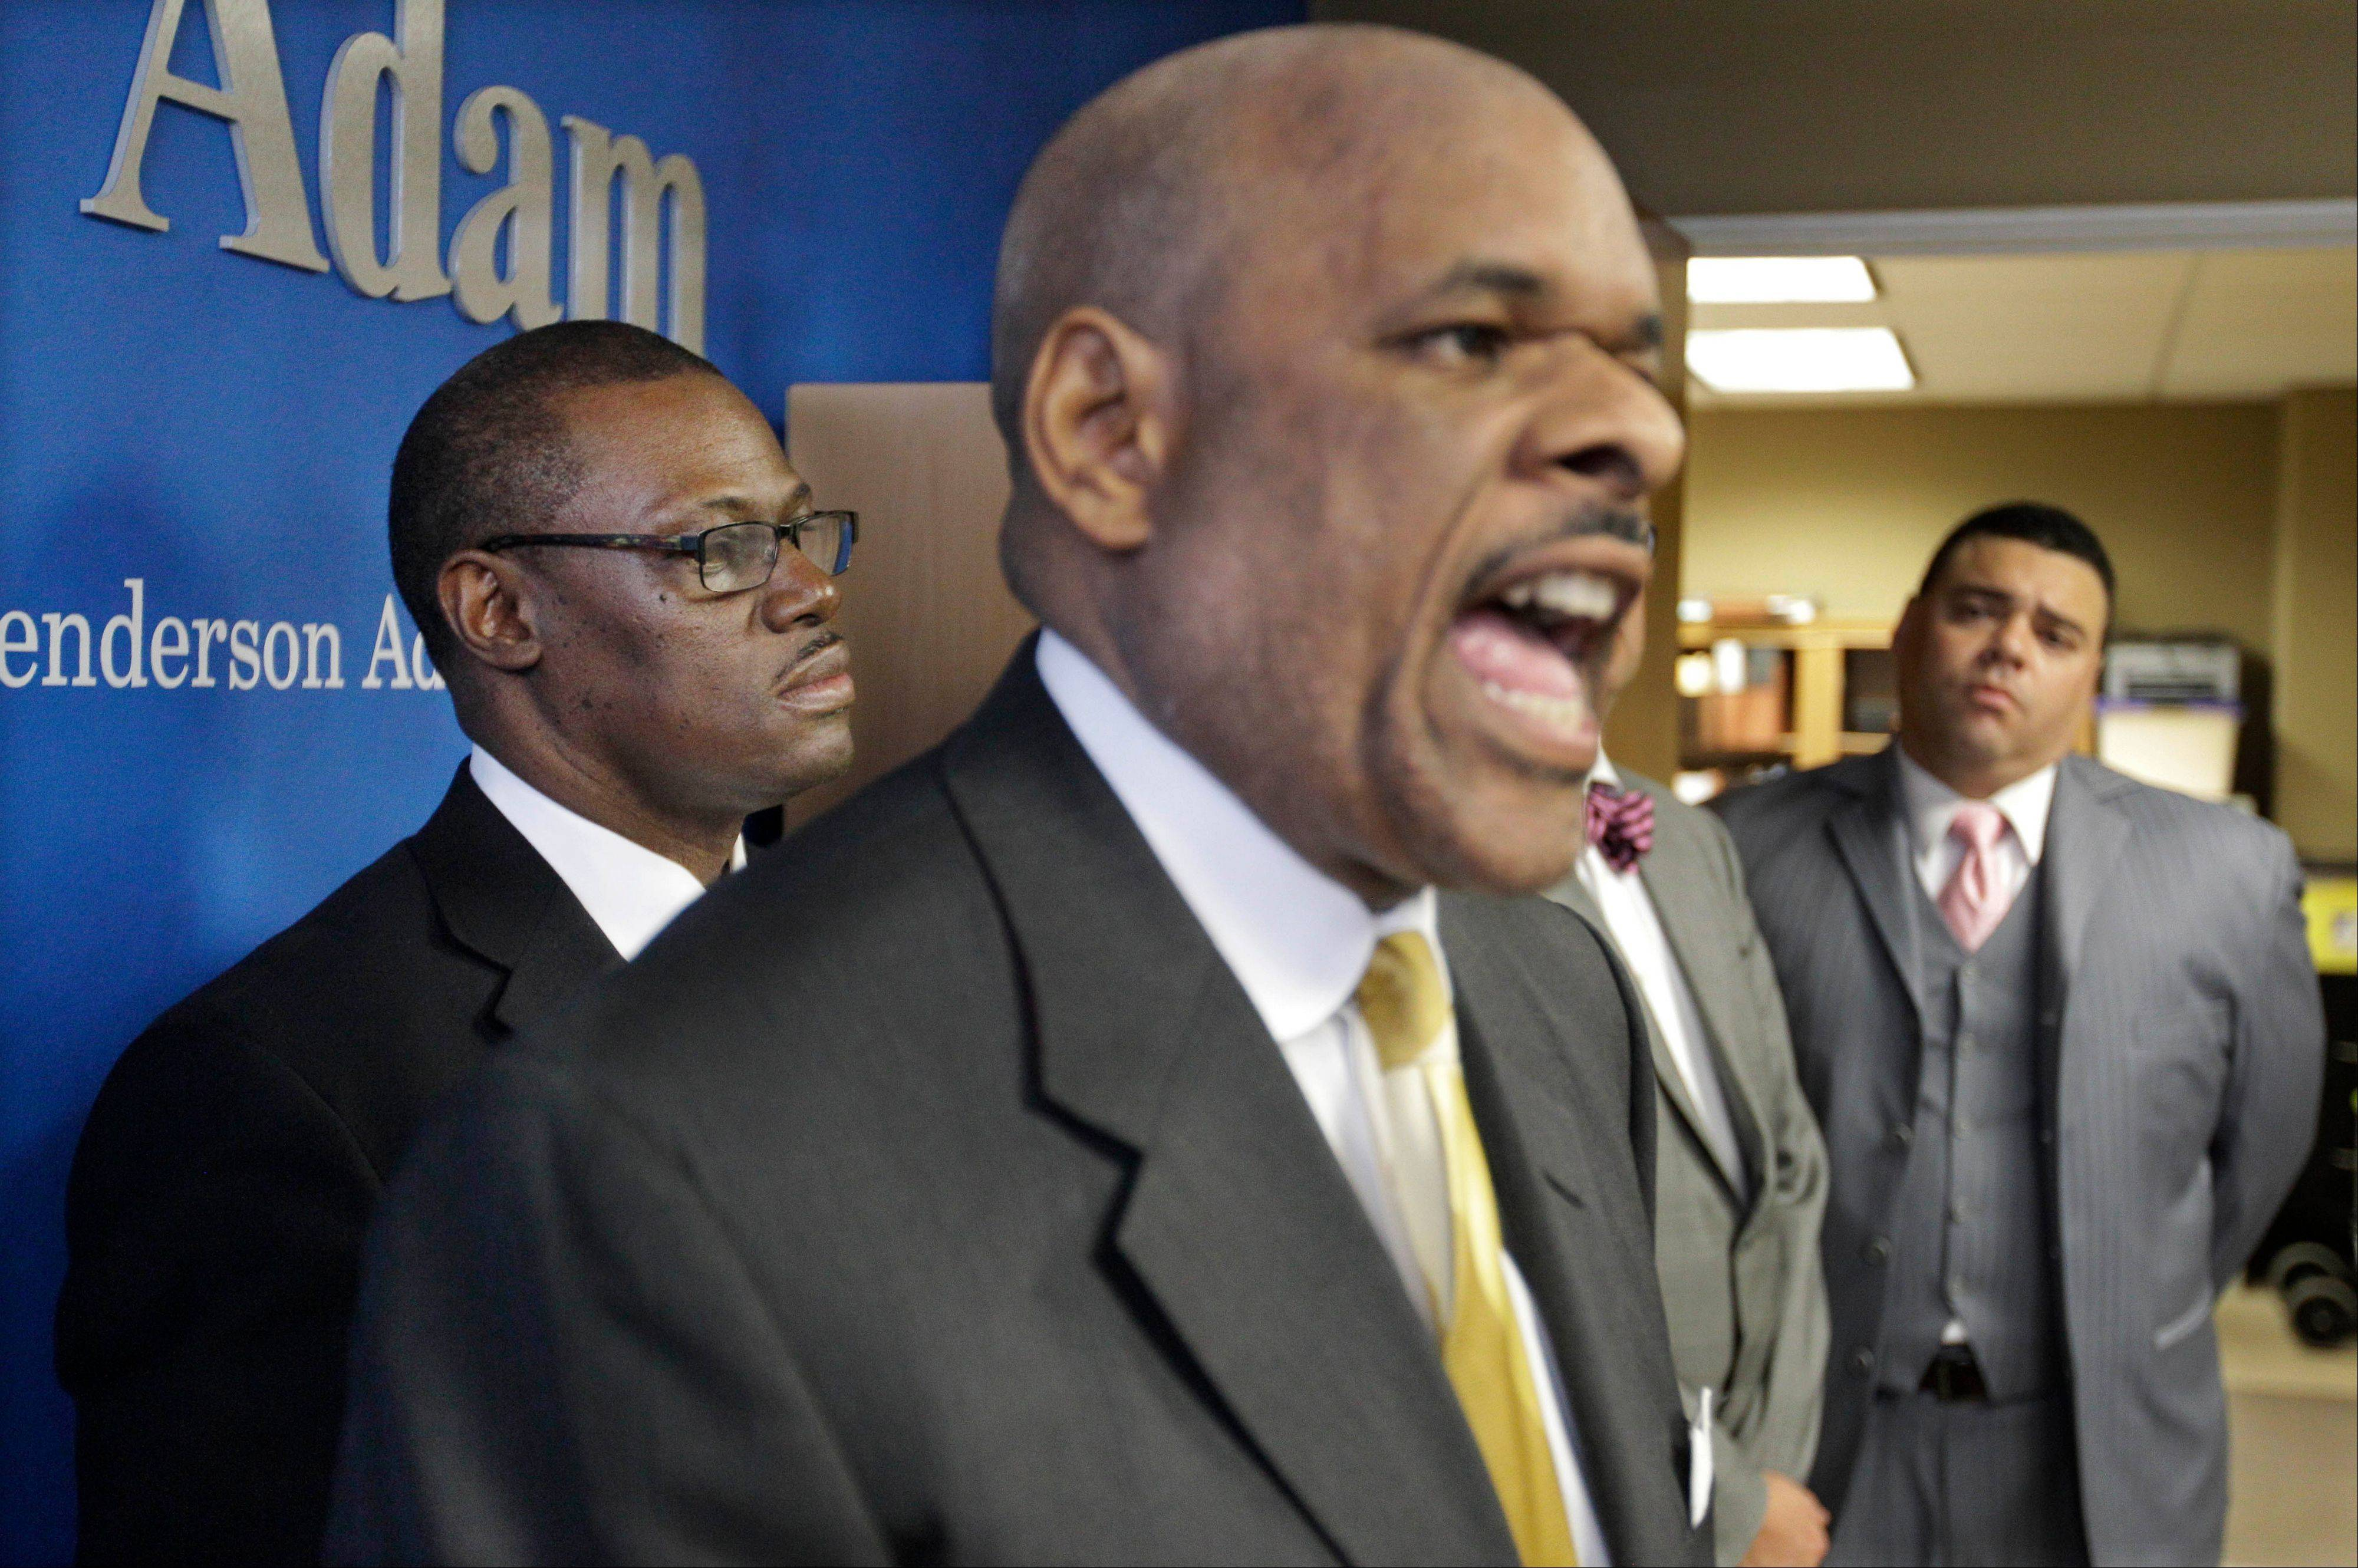 Victor Henderson, attorney for Democrat Derrick Smith, left, speaks during a news conference with his client and fellow lawyer Sam Adam Jr., right, on Thursday in Chicago.